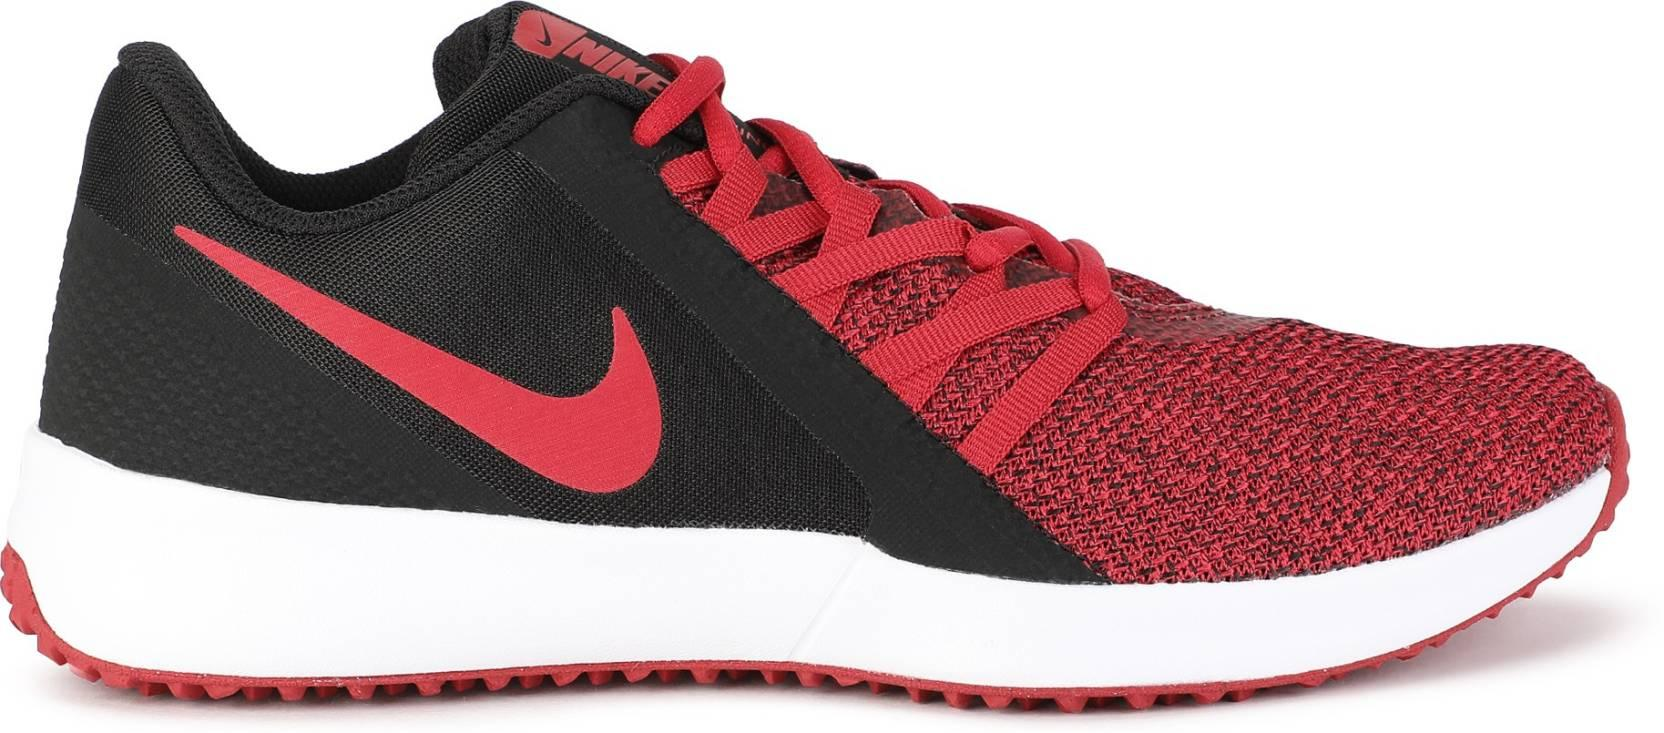 NikeVarsity Compete Trainer Training & Gym Shoe For Men(Red, Black)